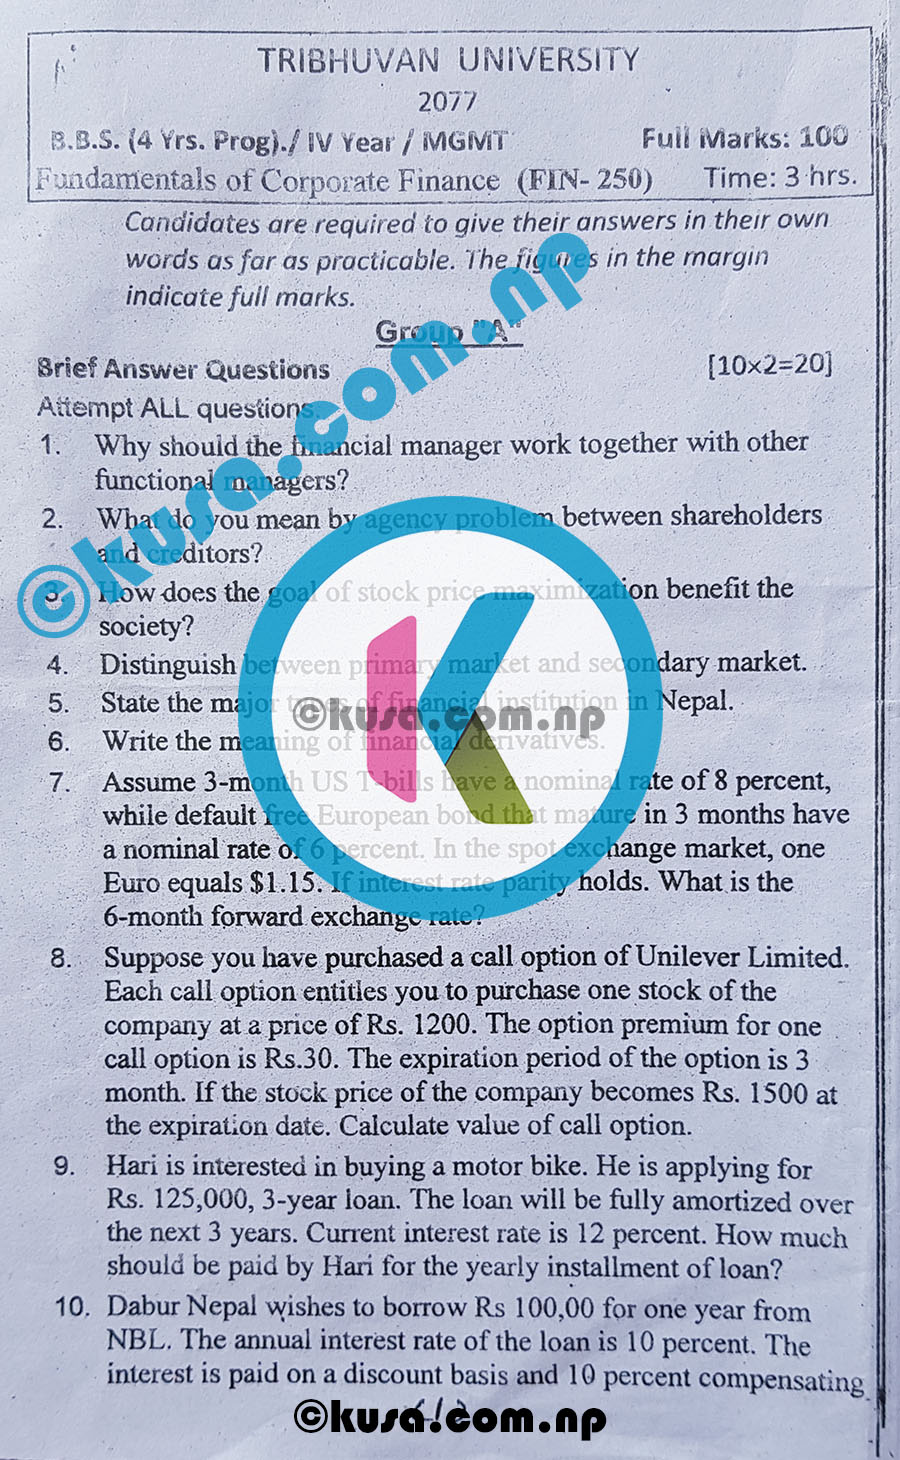 BBS-4-Years-Program-IV-Year-Fundamentals-of-Corporate-Finance-FIN-250-Question-Paper-2077-TU